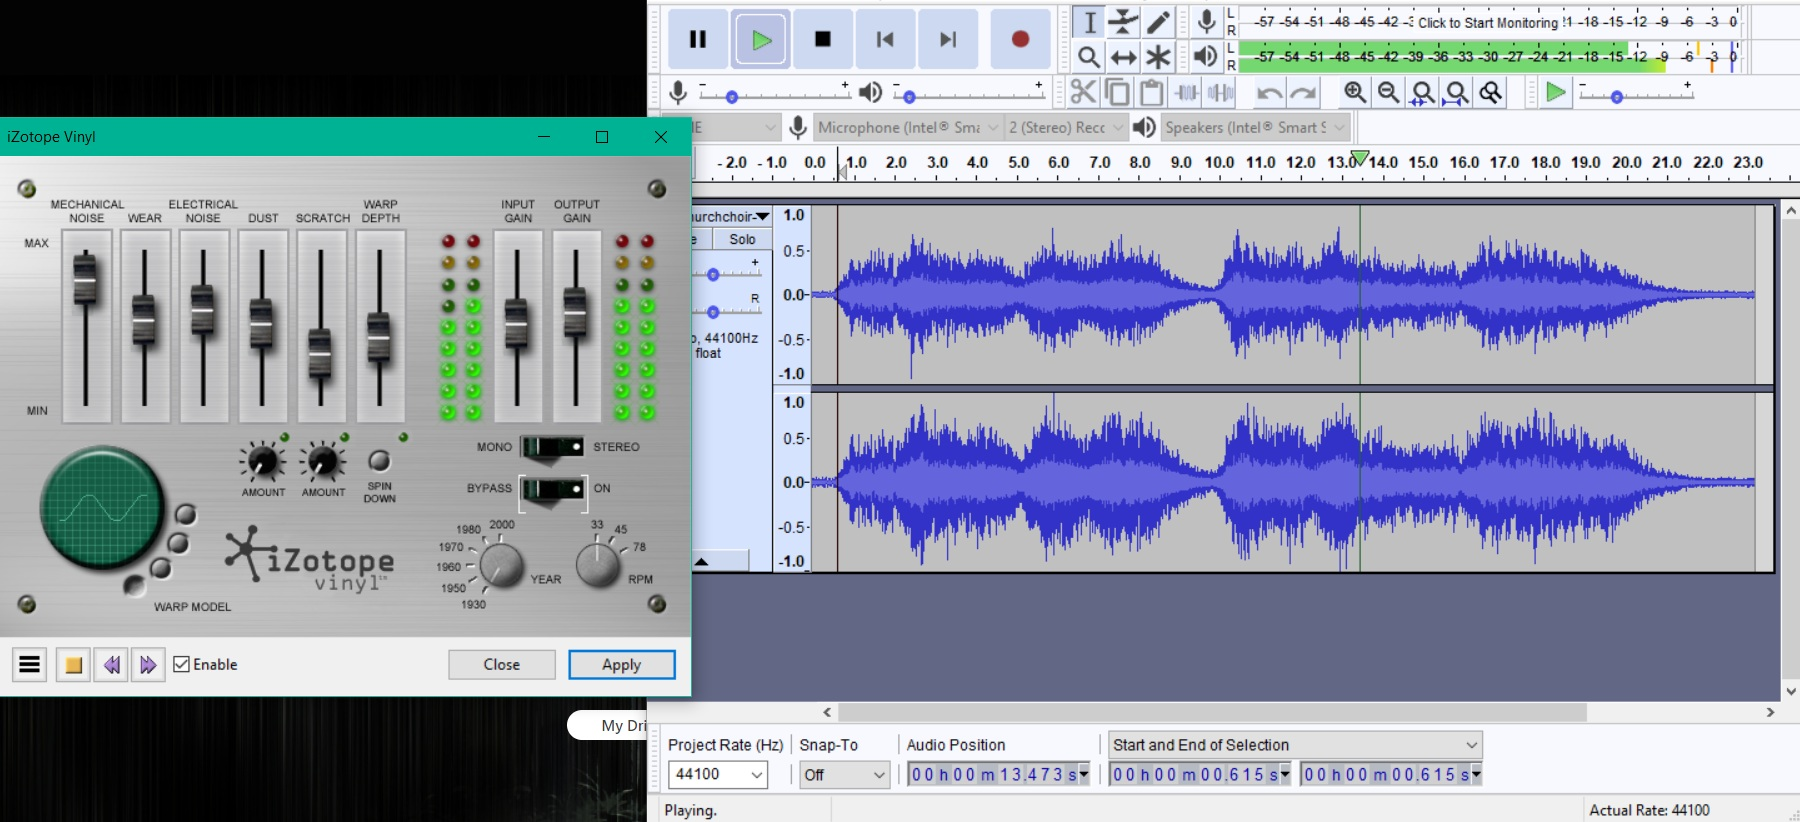 Workspace in Audacity for distortion of music to input into final edit of film clip.